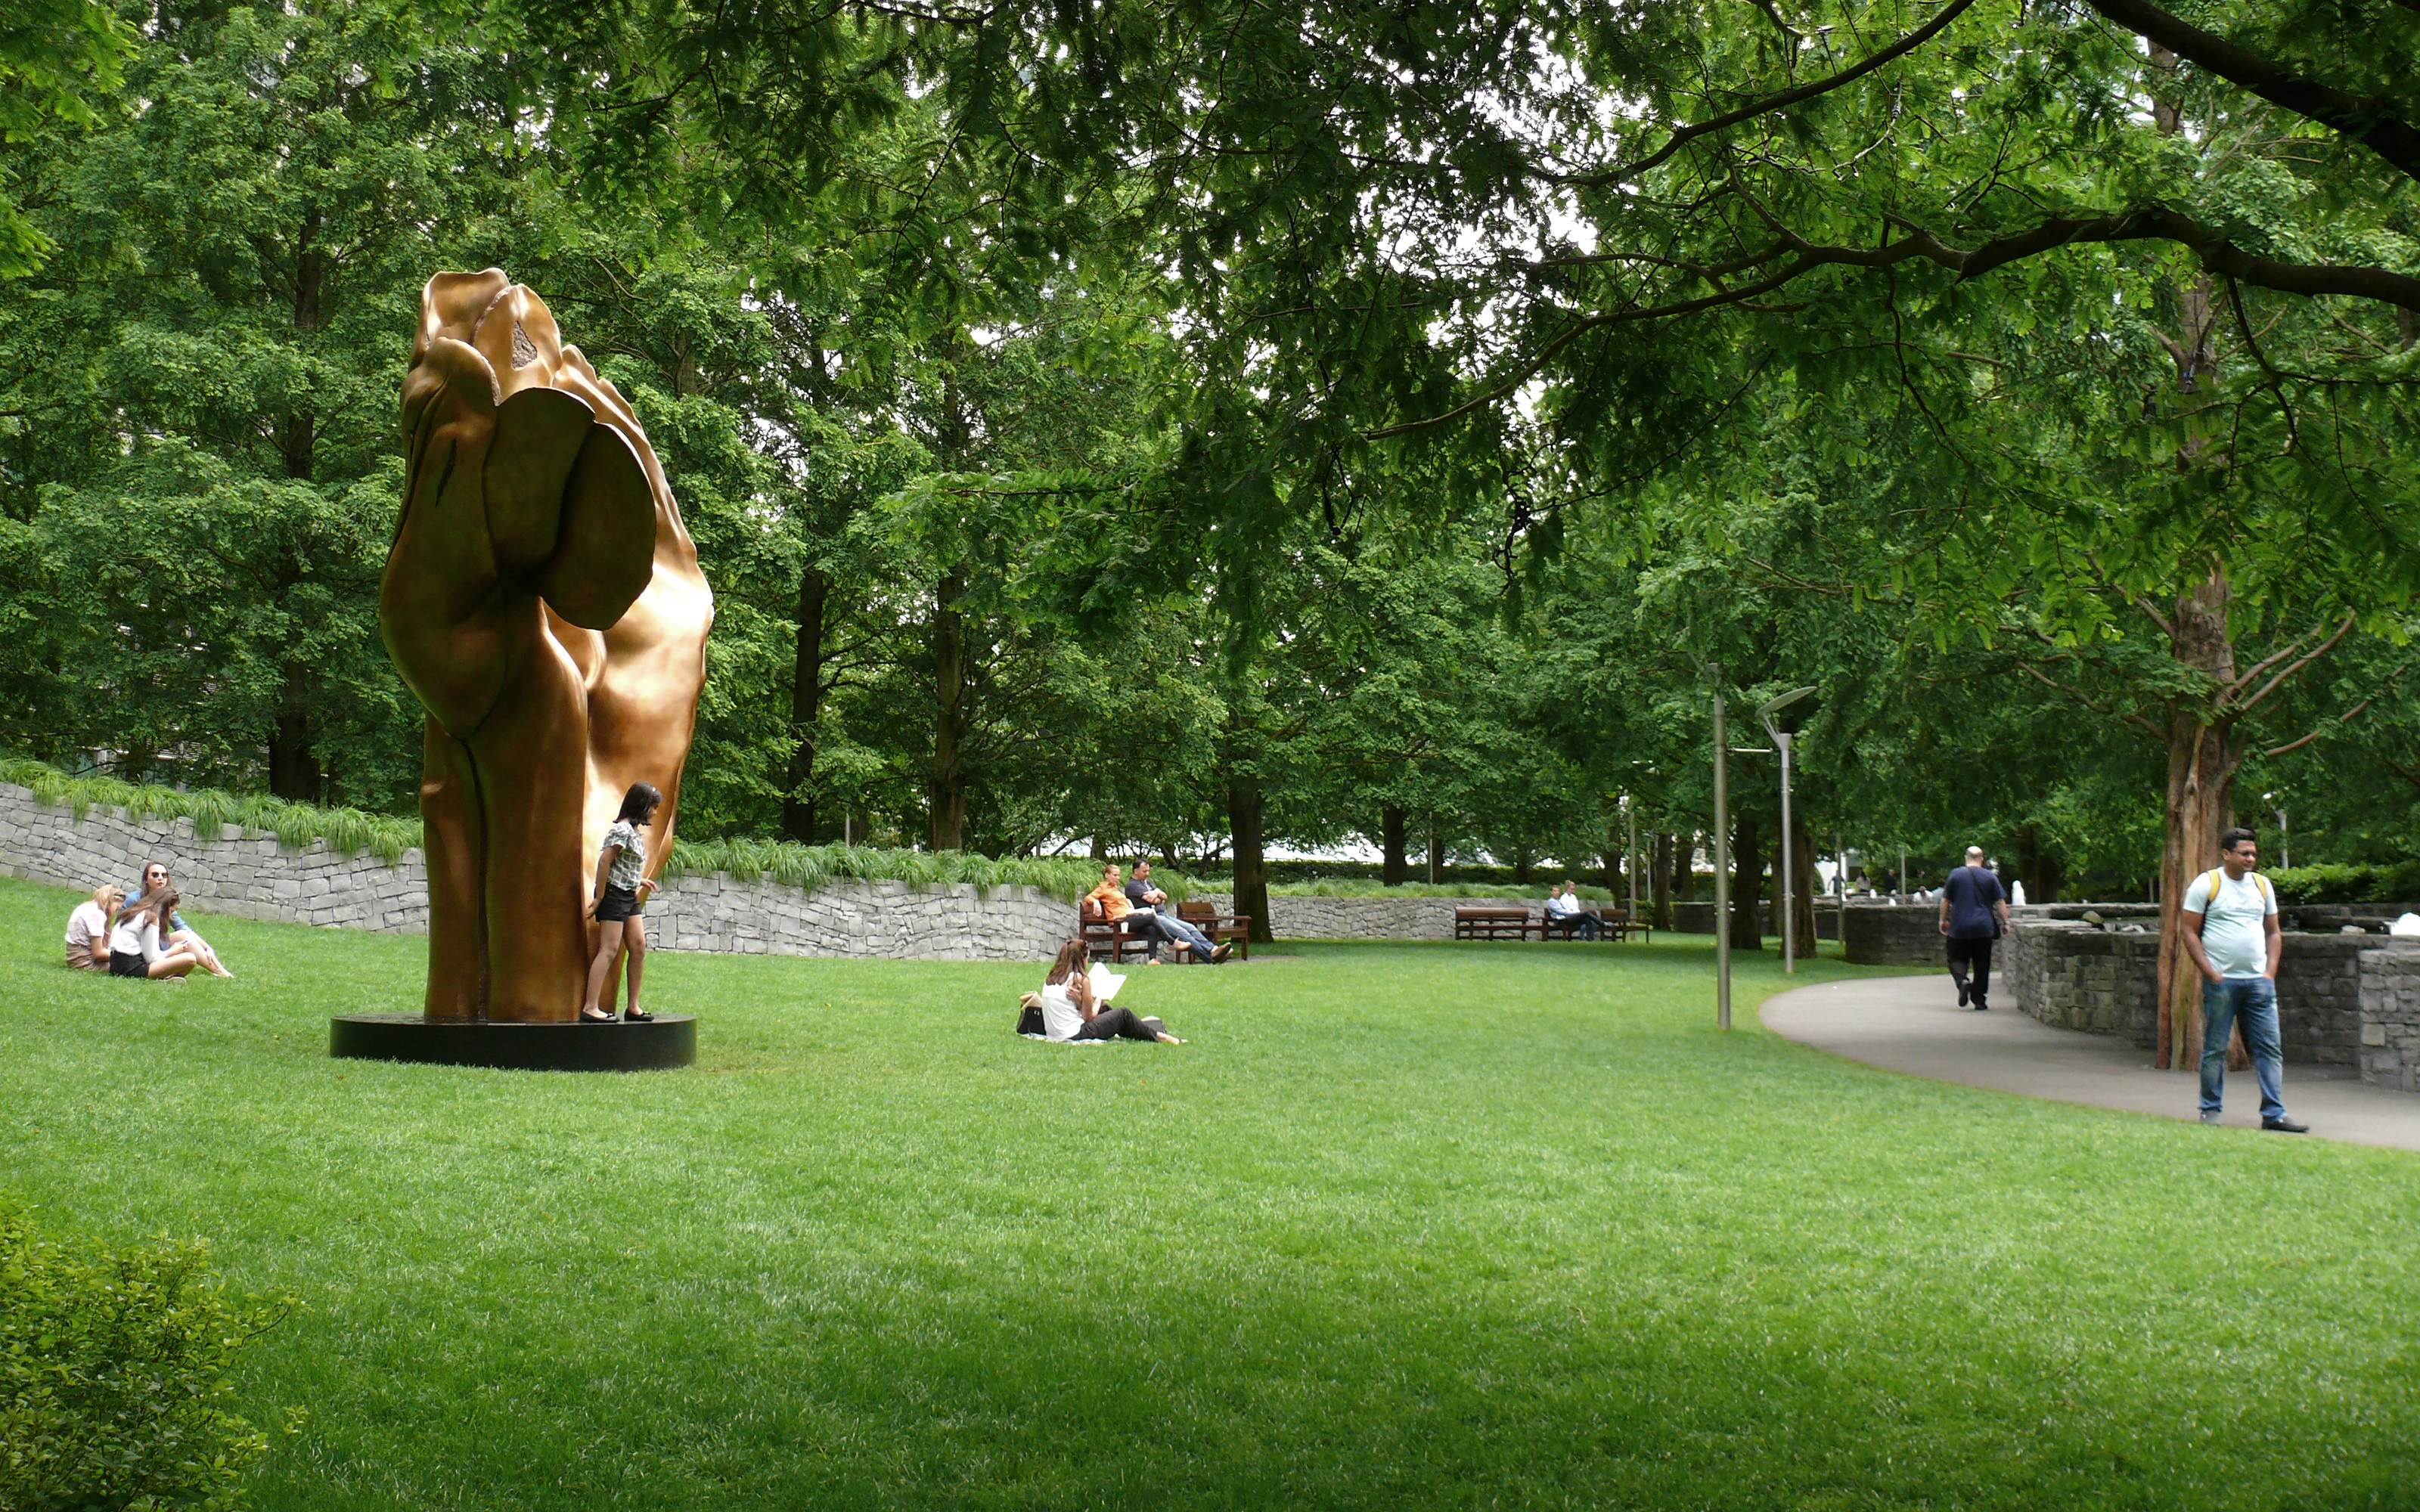 Bronze sculpture on the lawn and people relaxing in the park